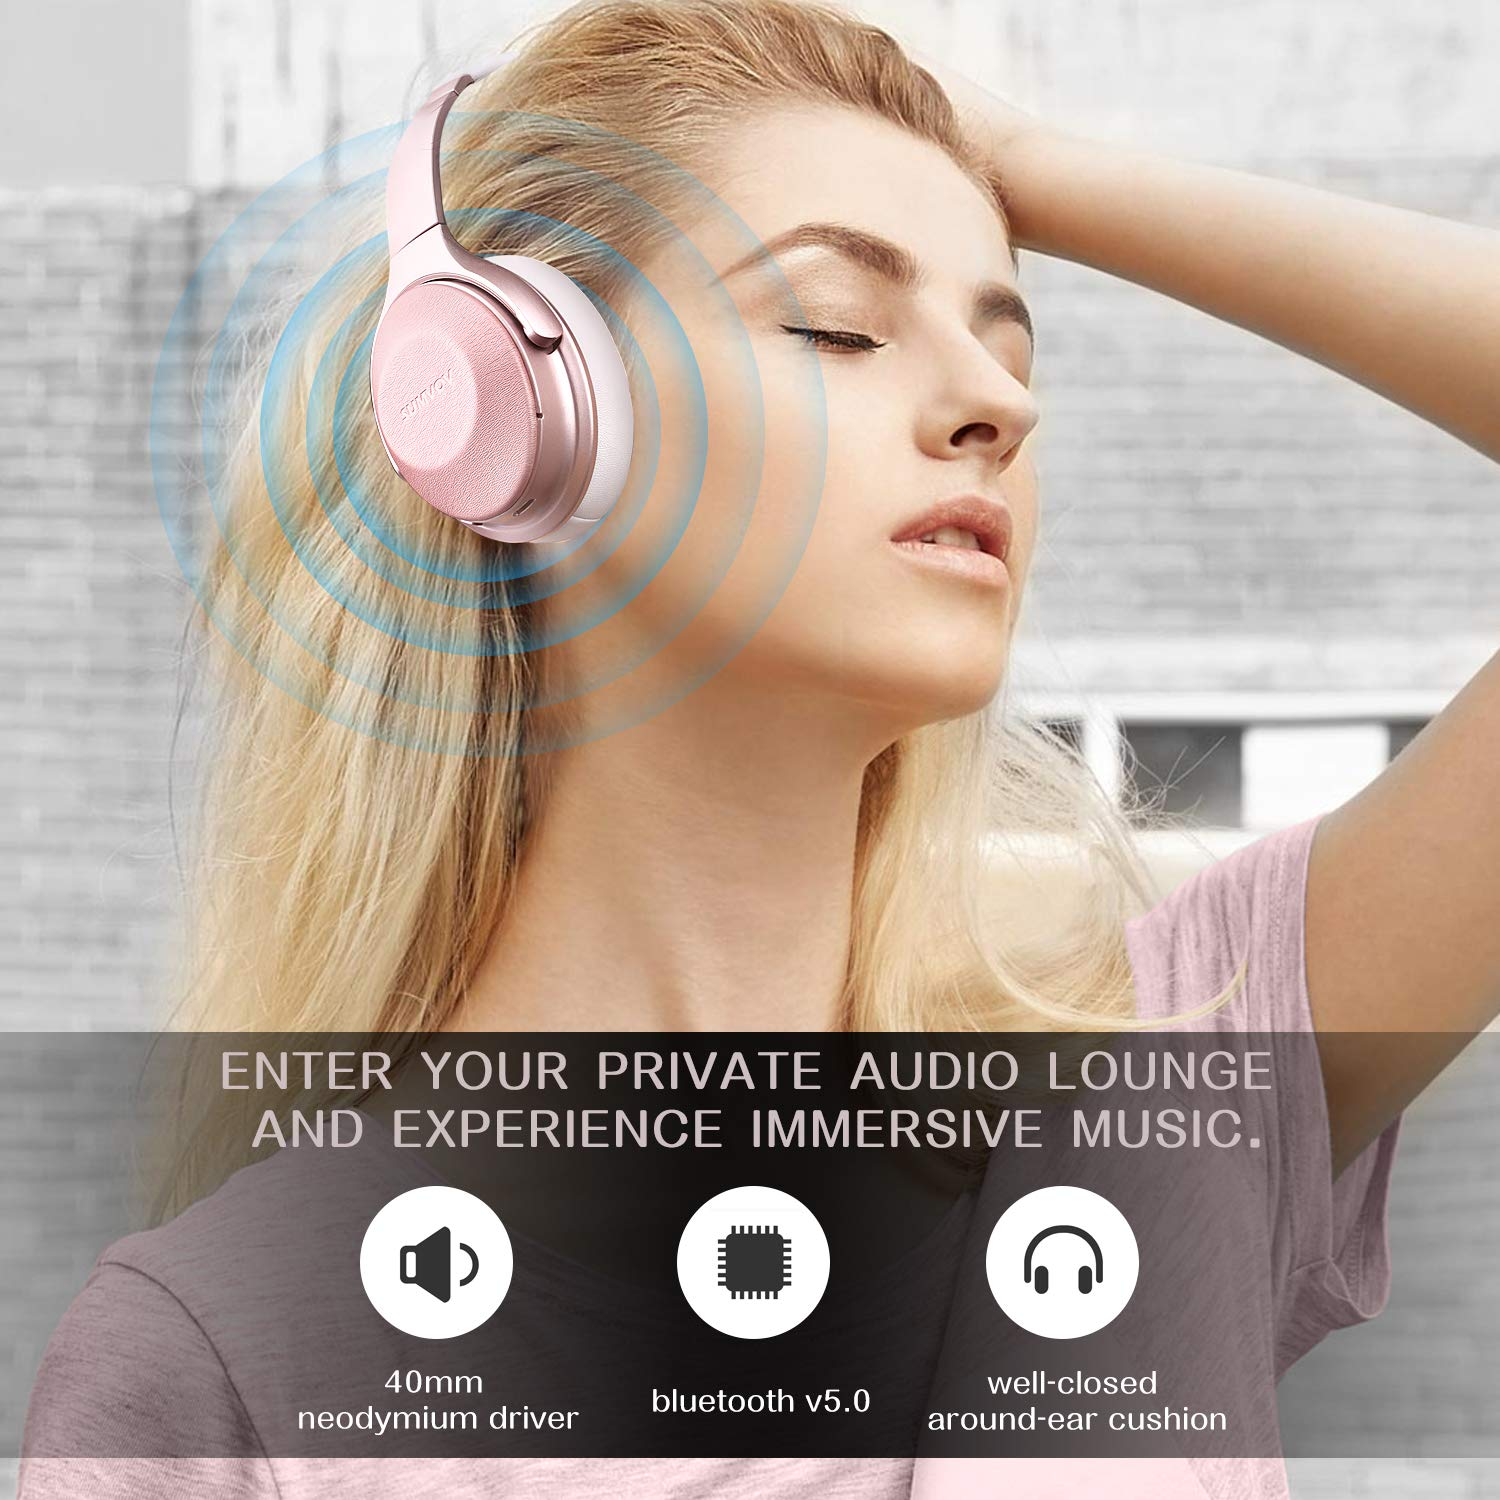 Sumvov Wireless Headphones Over Ear, Bluetooth Headphones 5.0 with Mic, Quick Charge, 30 Hours Playtime, Deep Bass, Protein Earpads, Hi-Fi Stereo Foldable Headset, for Cellphone/TV/PC (Rose Gold)